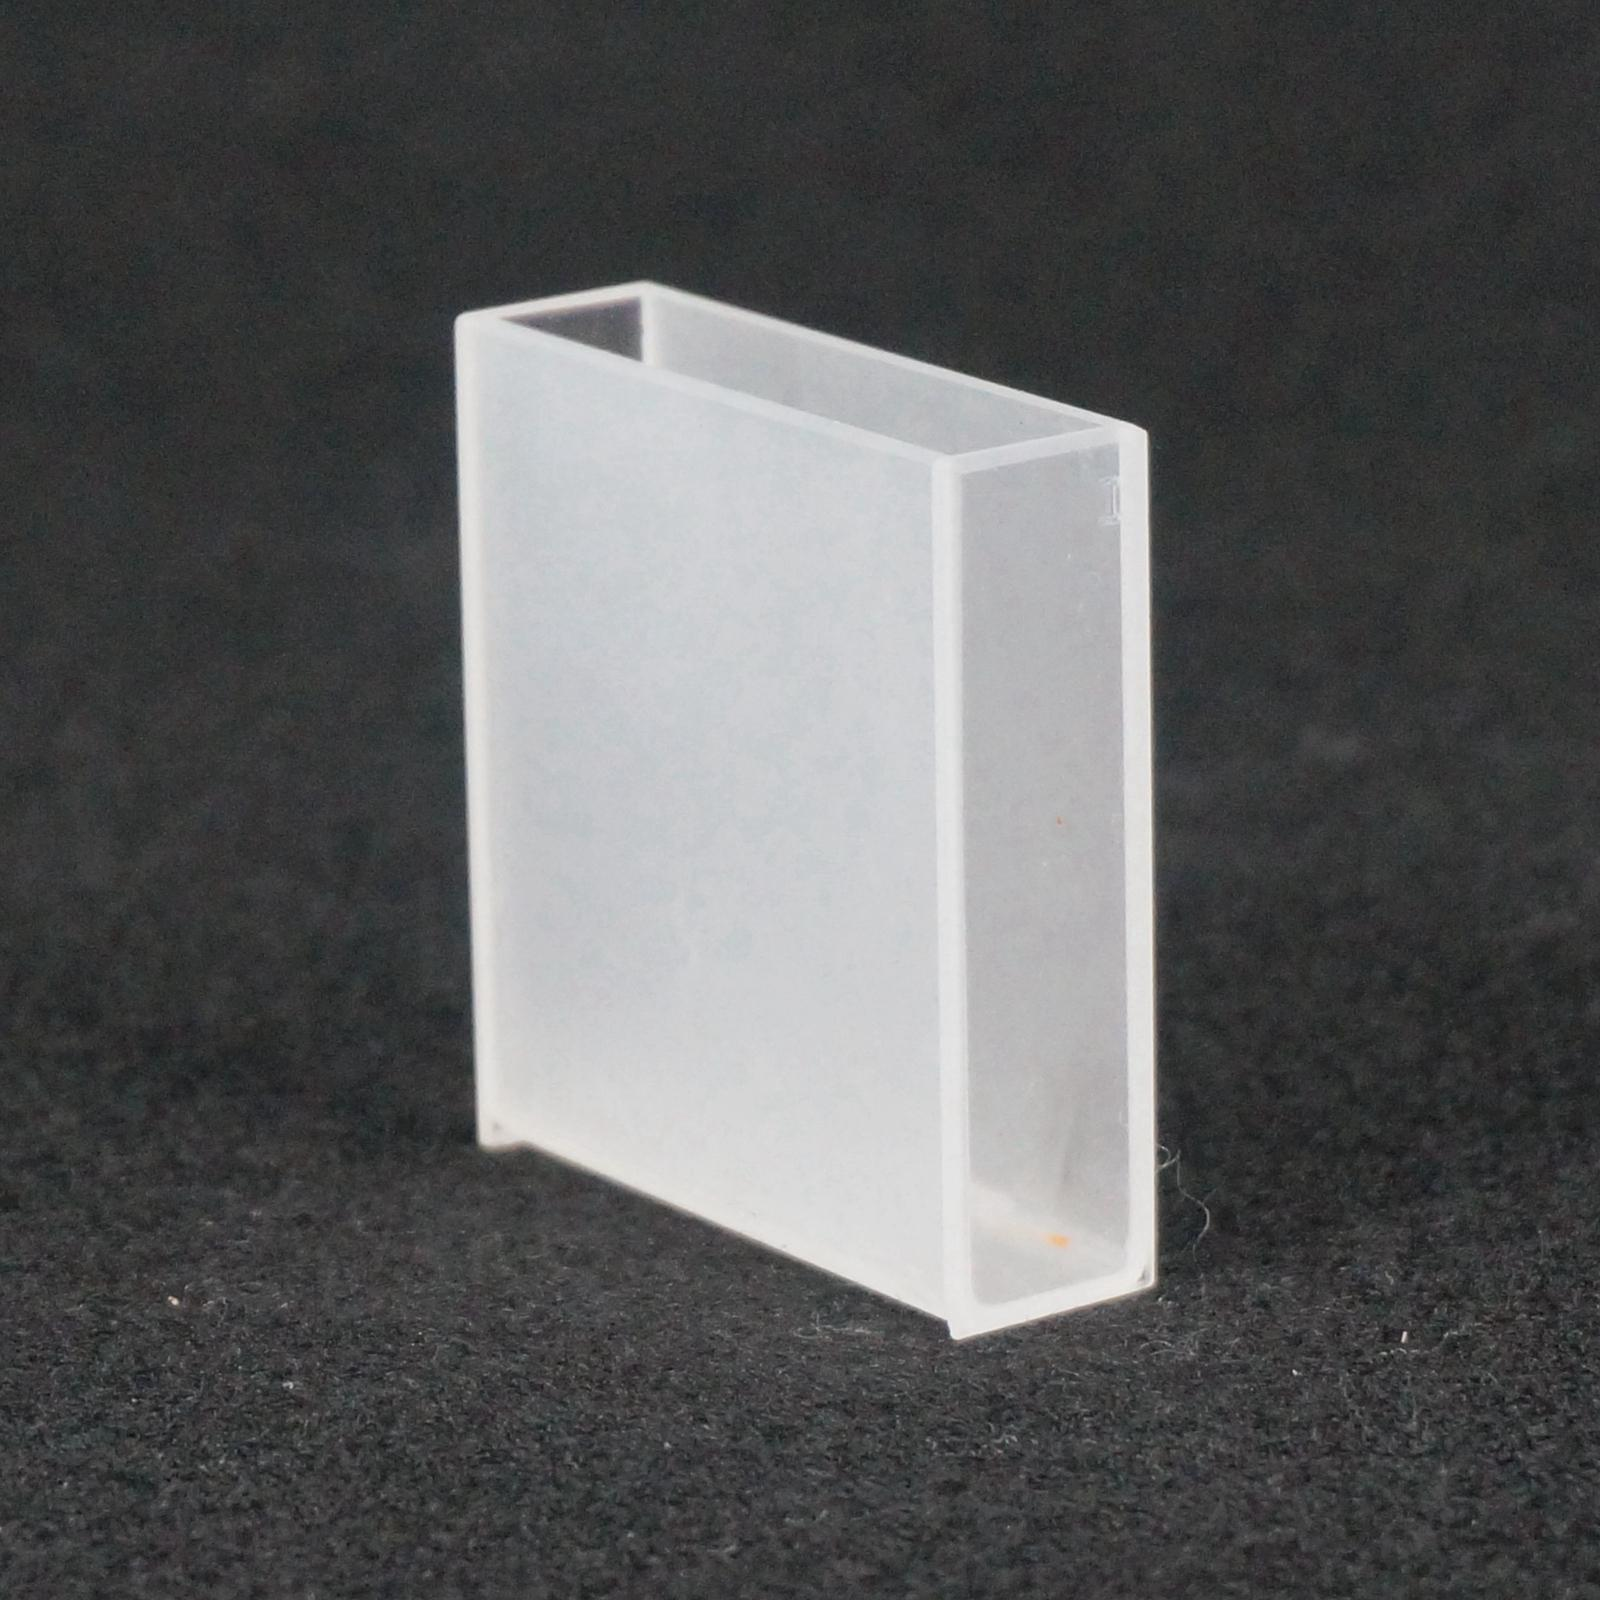 40mm Path Length Jgs-3 Quartz Cell Cuvette Cell With Telfon Lid For For Infrared Spectrometer кресло мешок dreambag подушка play